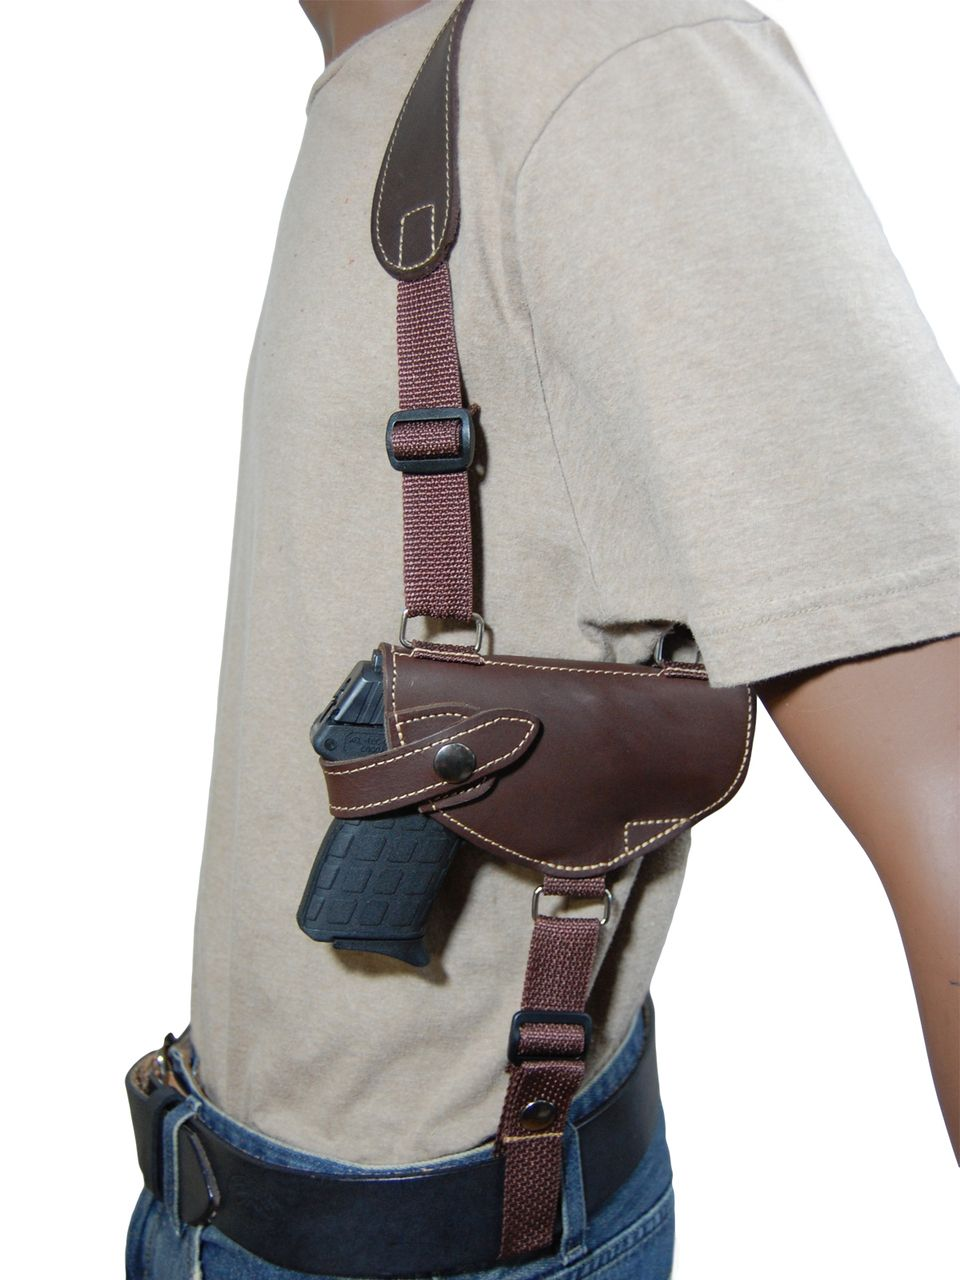 New Brown Leather Horizontal Cross Harness Shoulder Gun Holster for